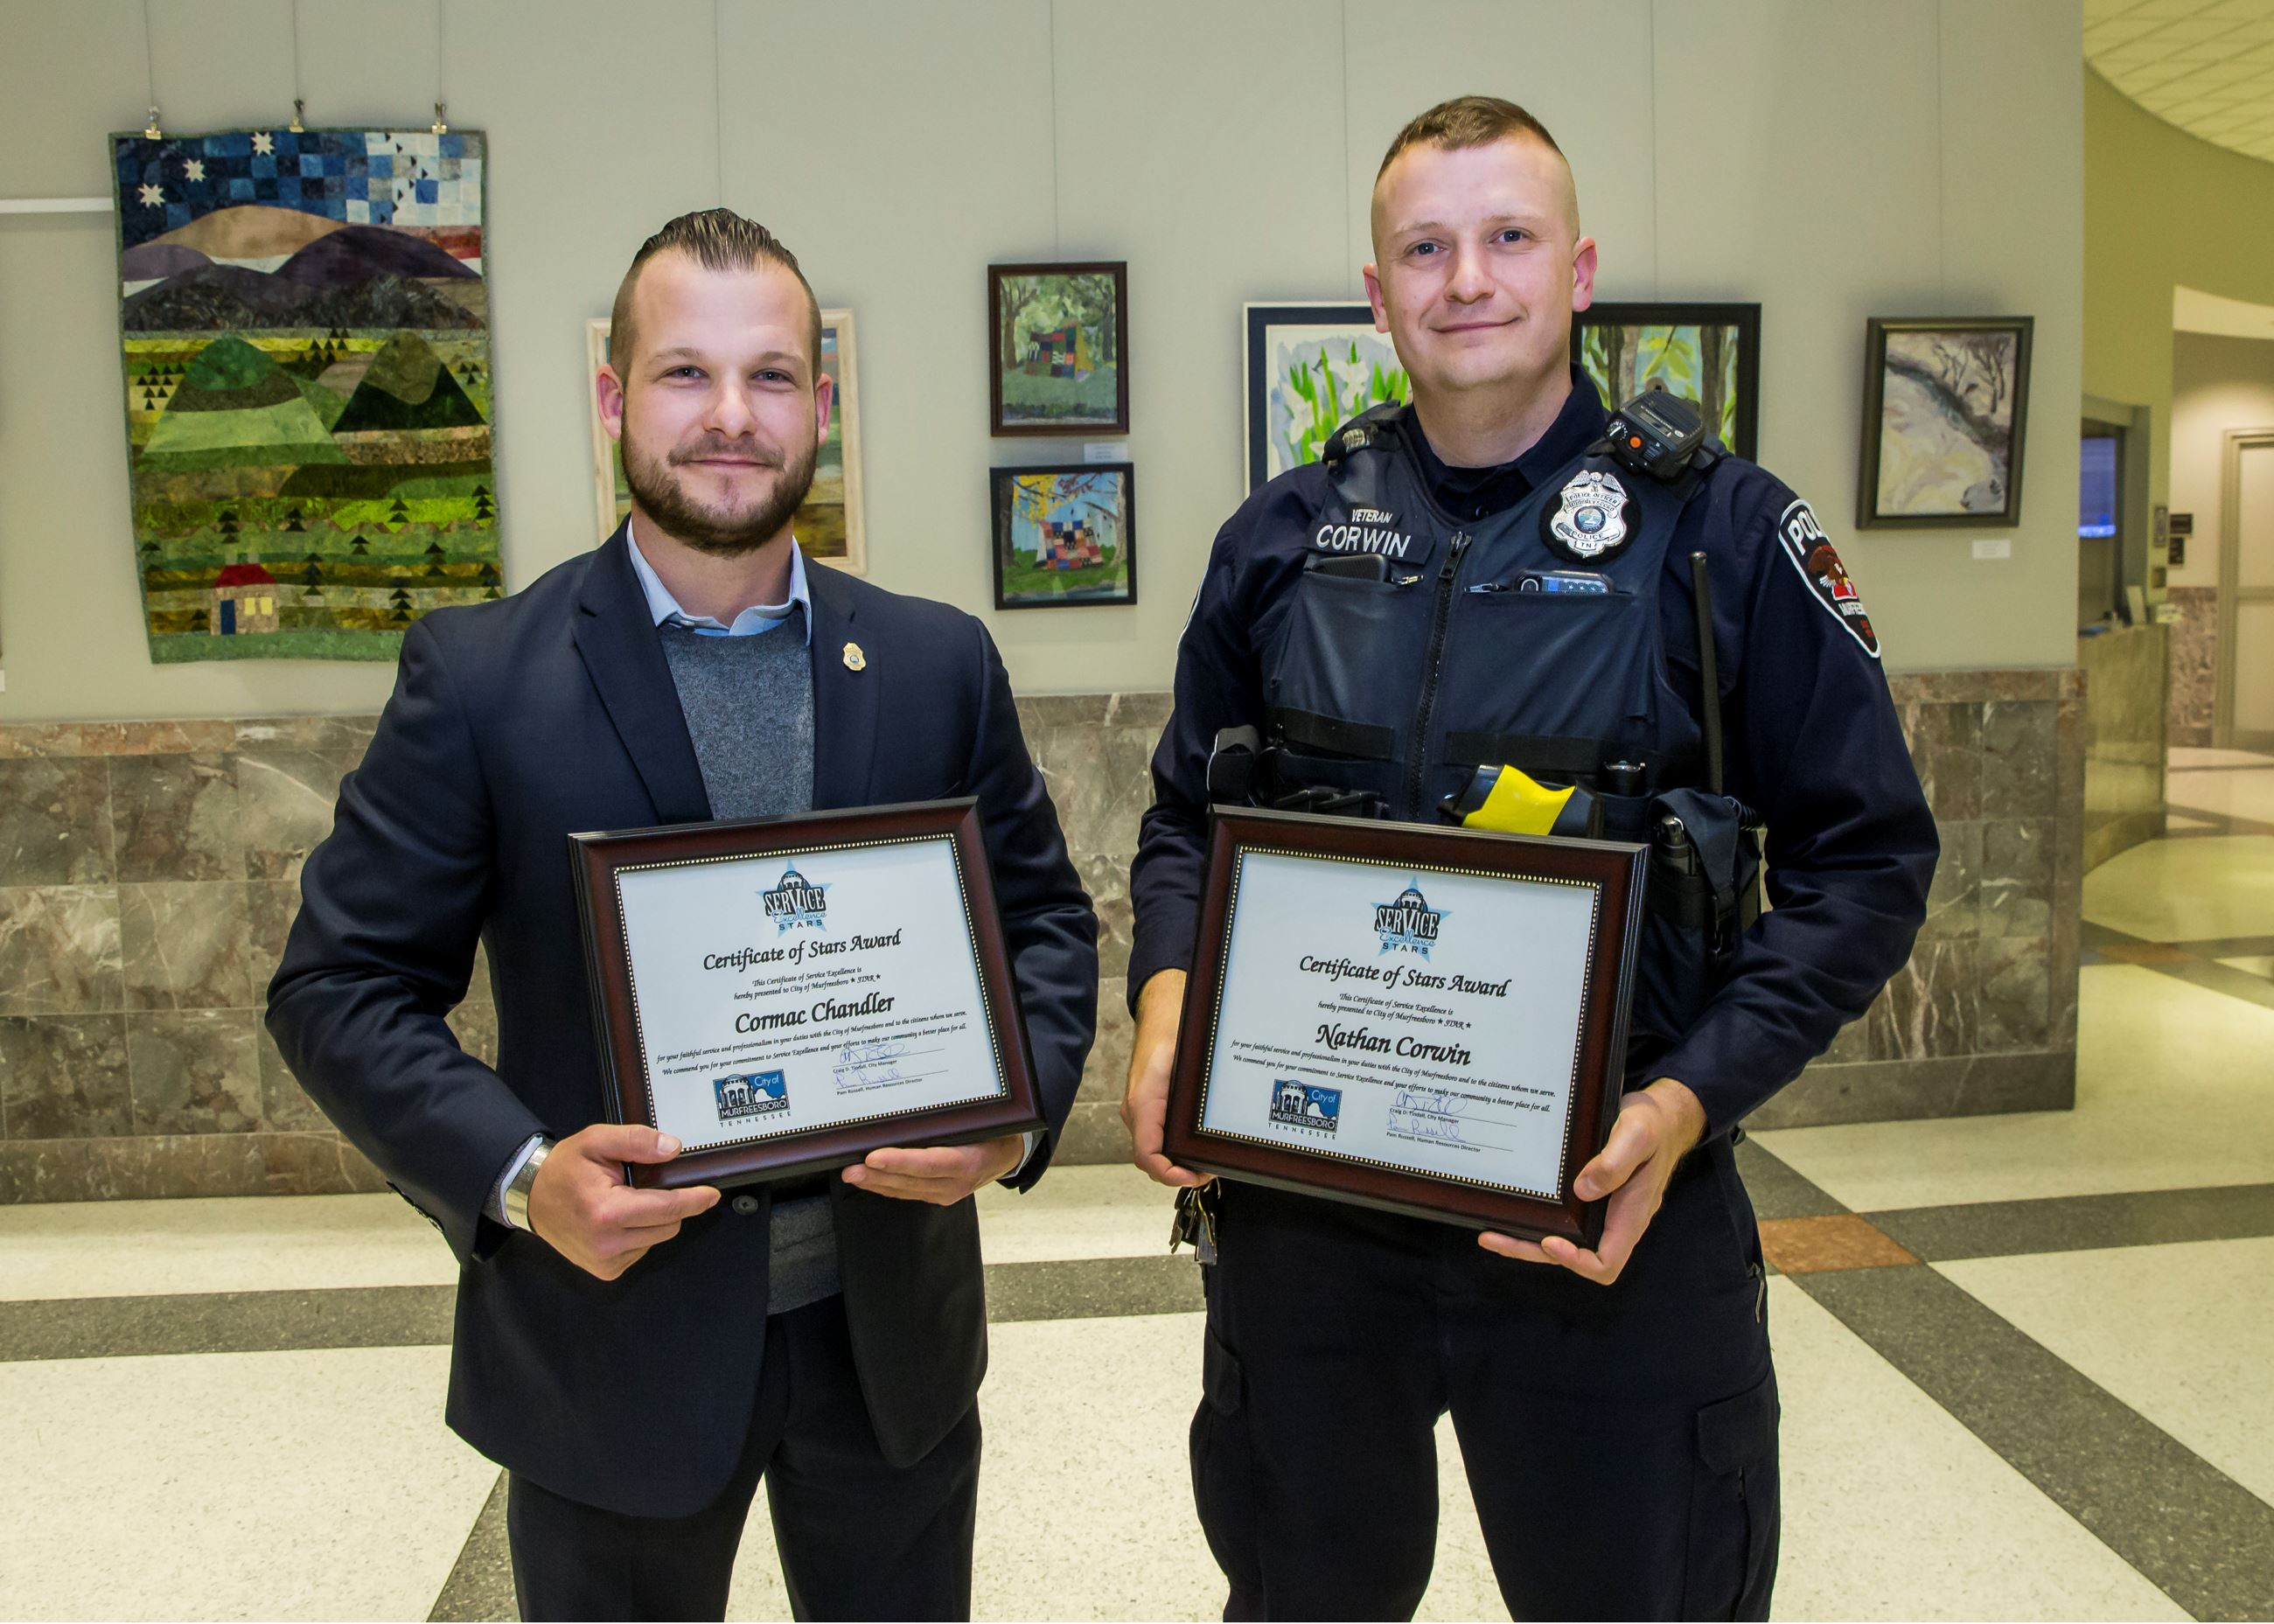 112119-stars-2447 Officer Chandler and Officer Corwin